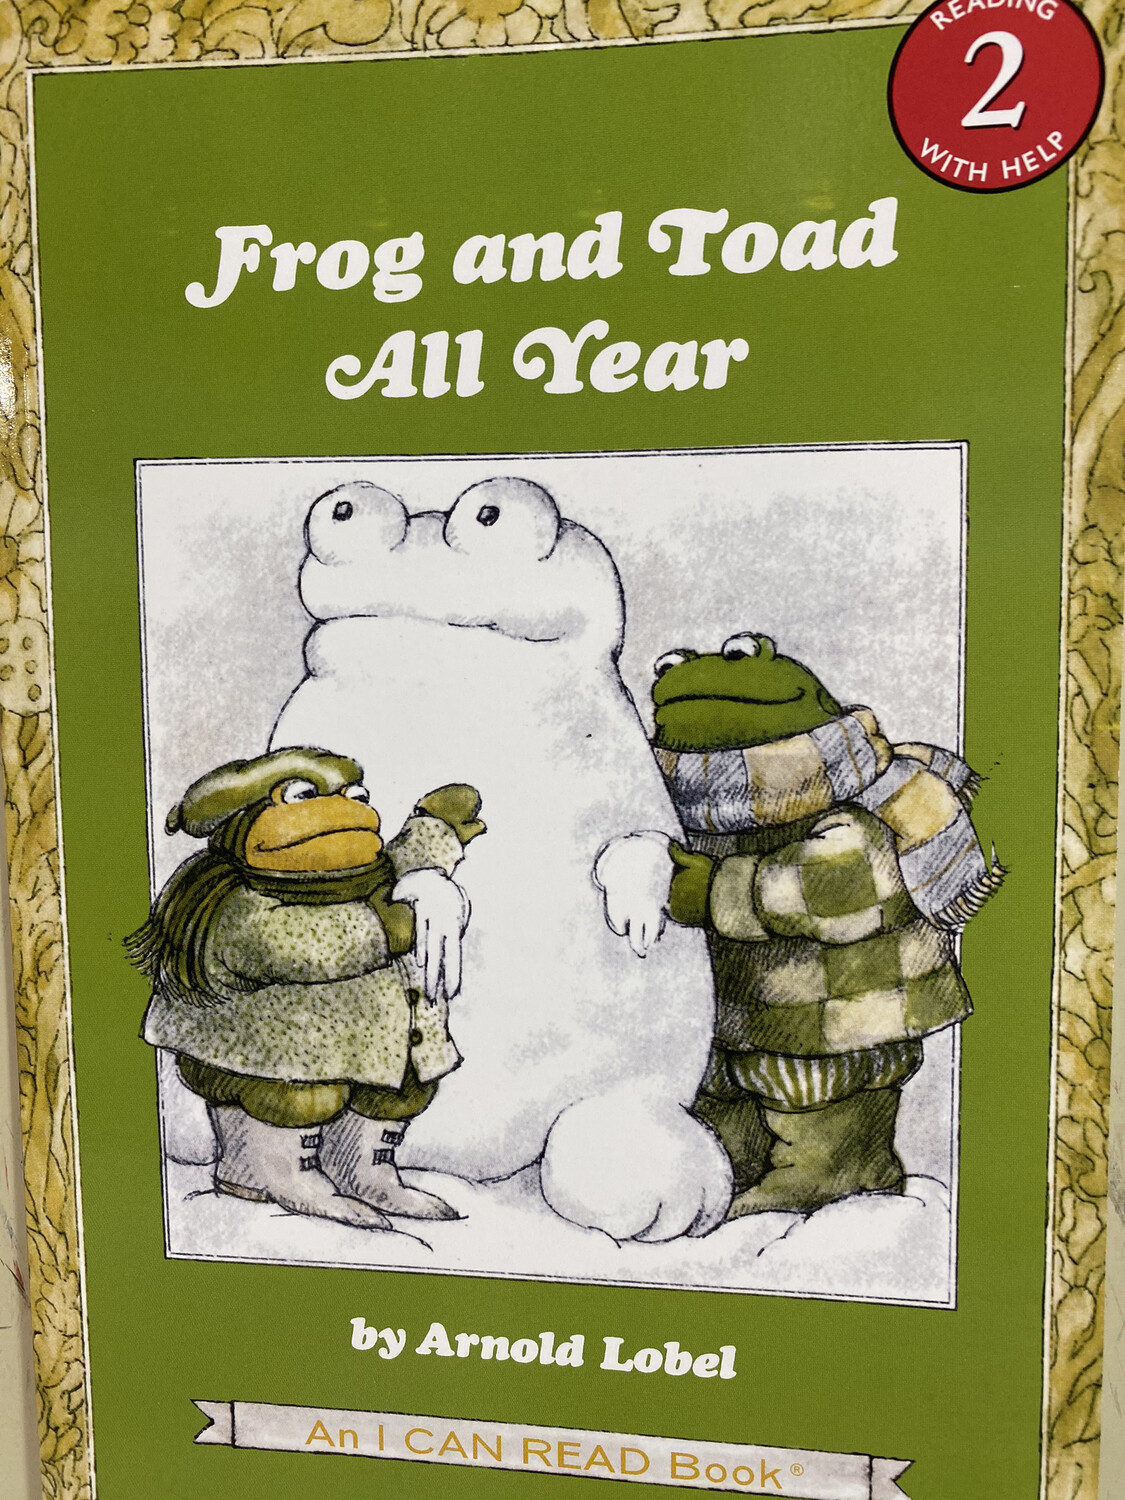 LOBEL, Frog And Toad All Year, Reading 2 Help